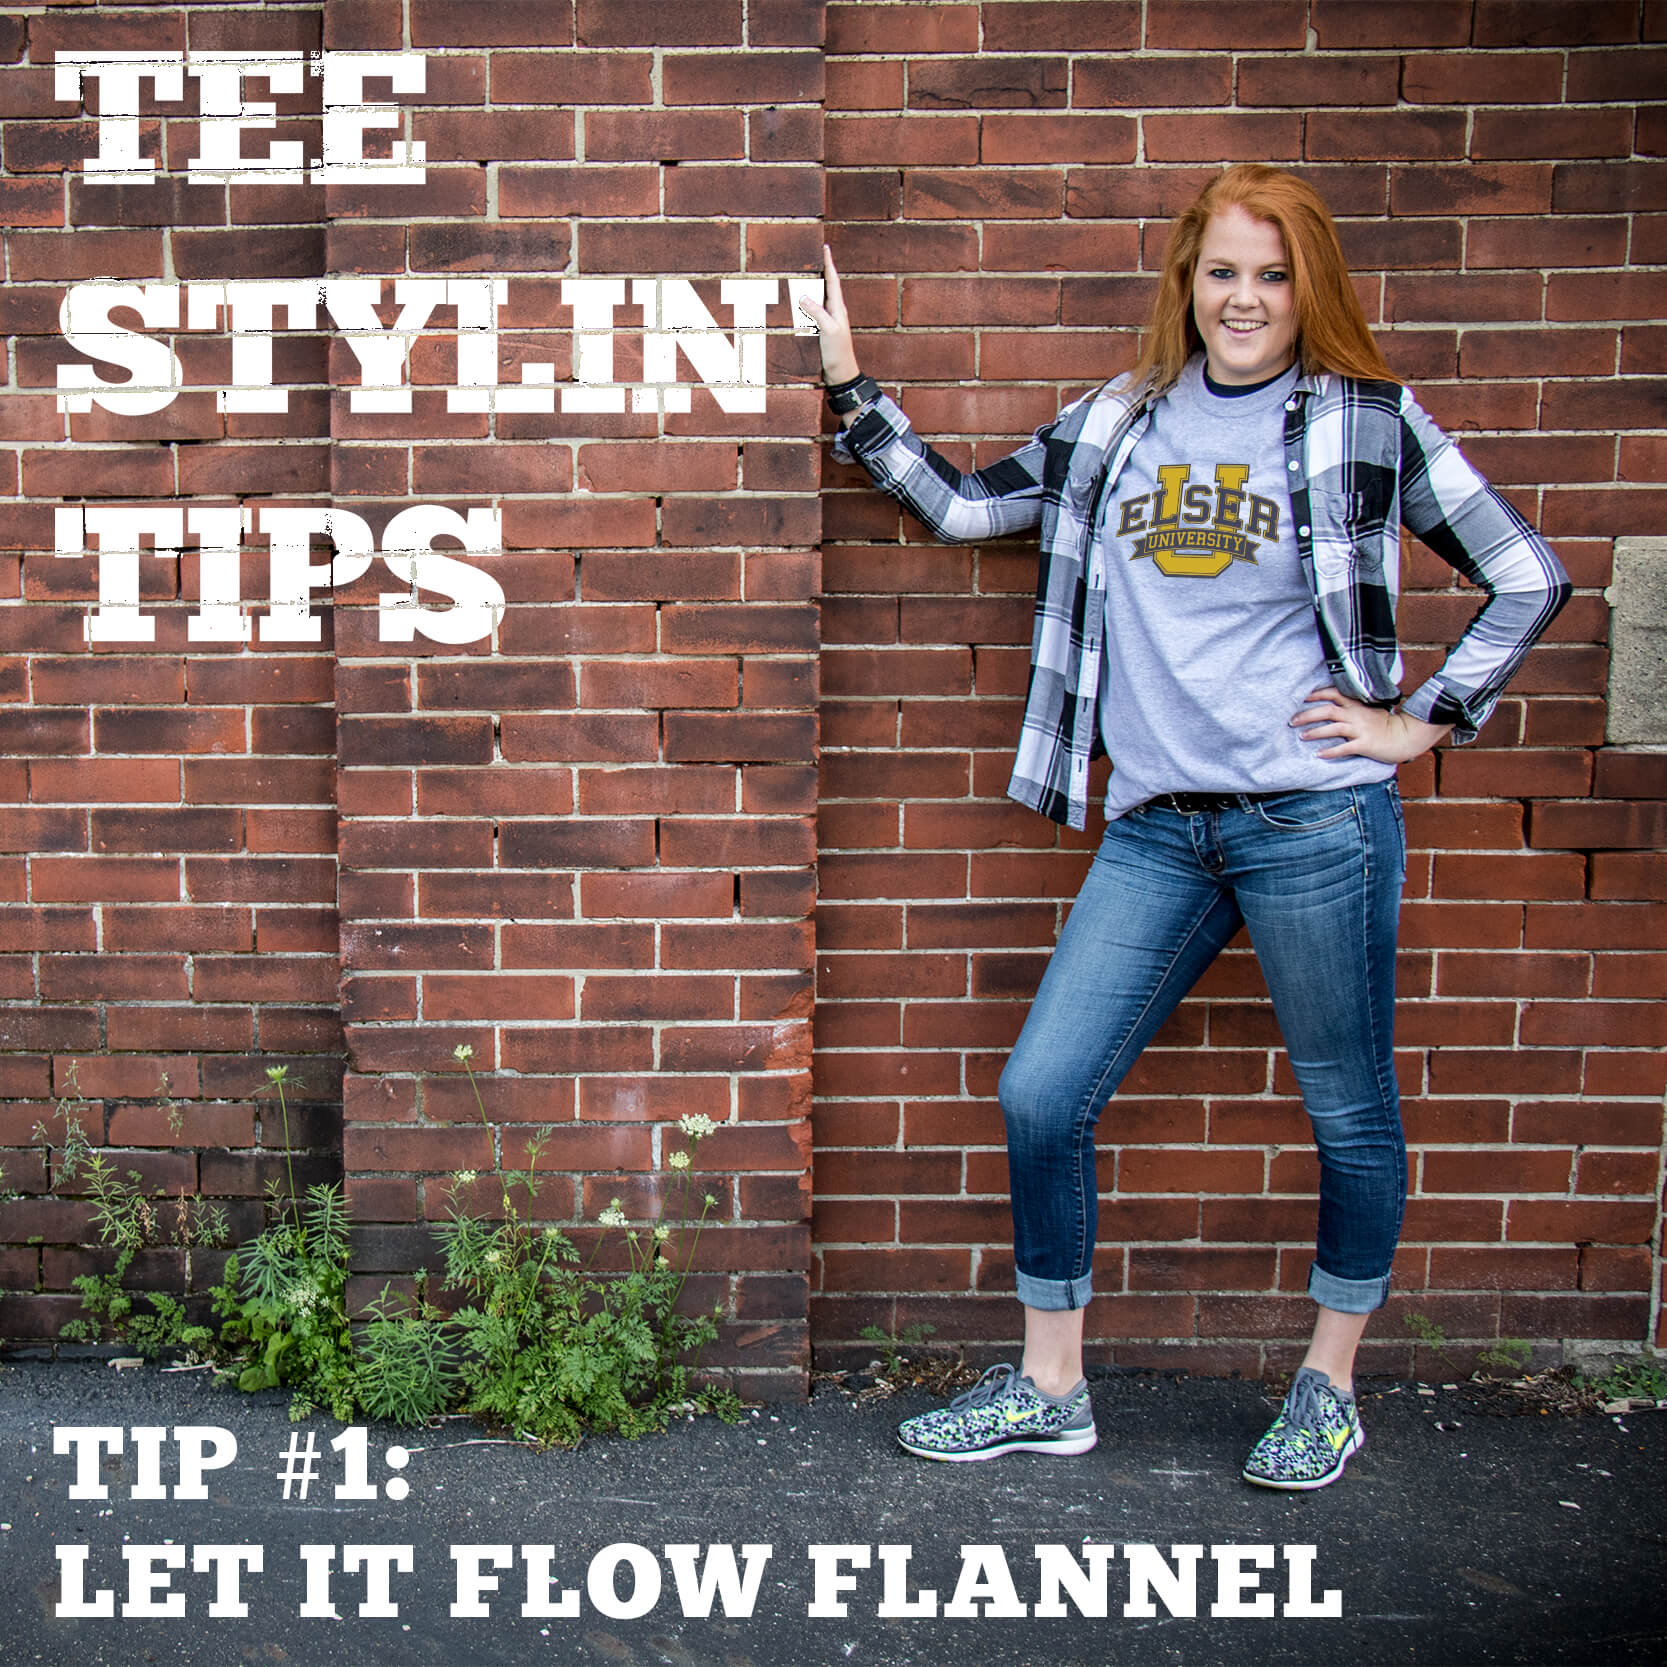 InkPixi's Back To School Stylin' Tips